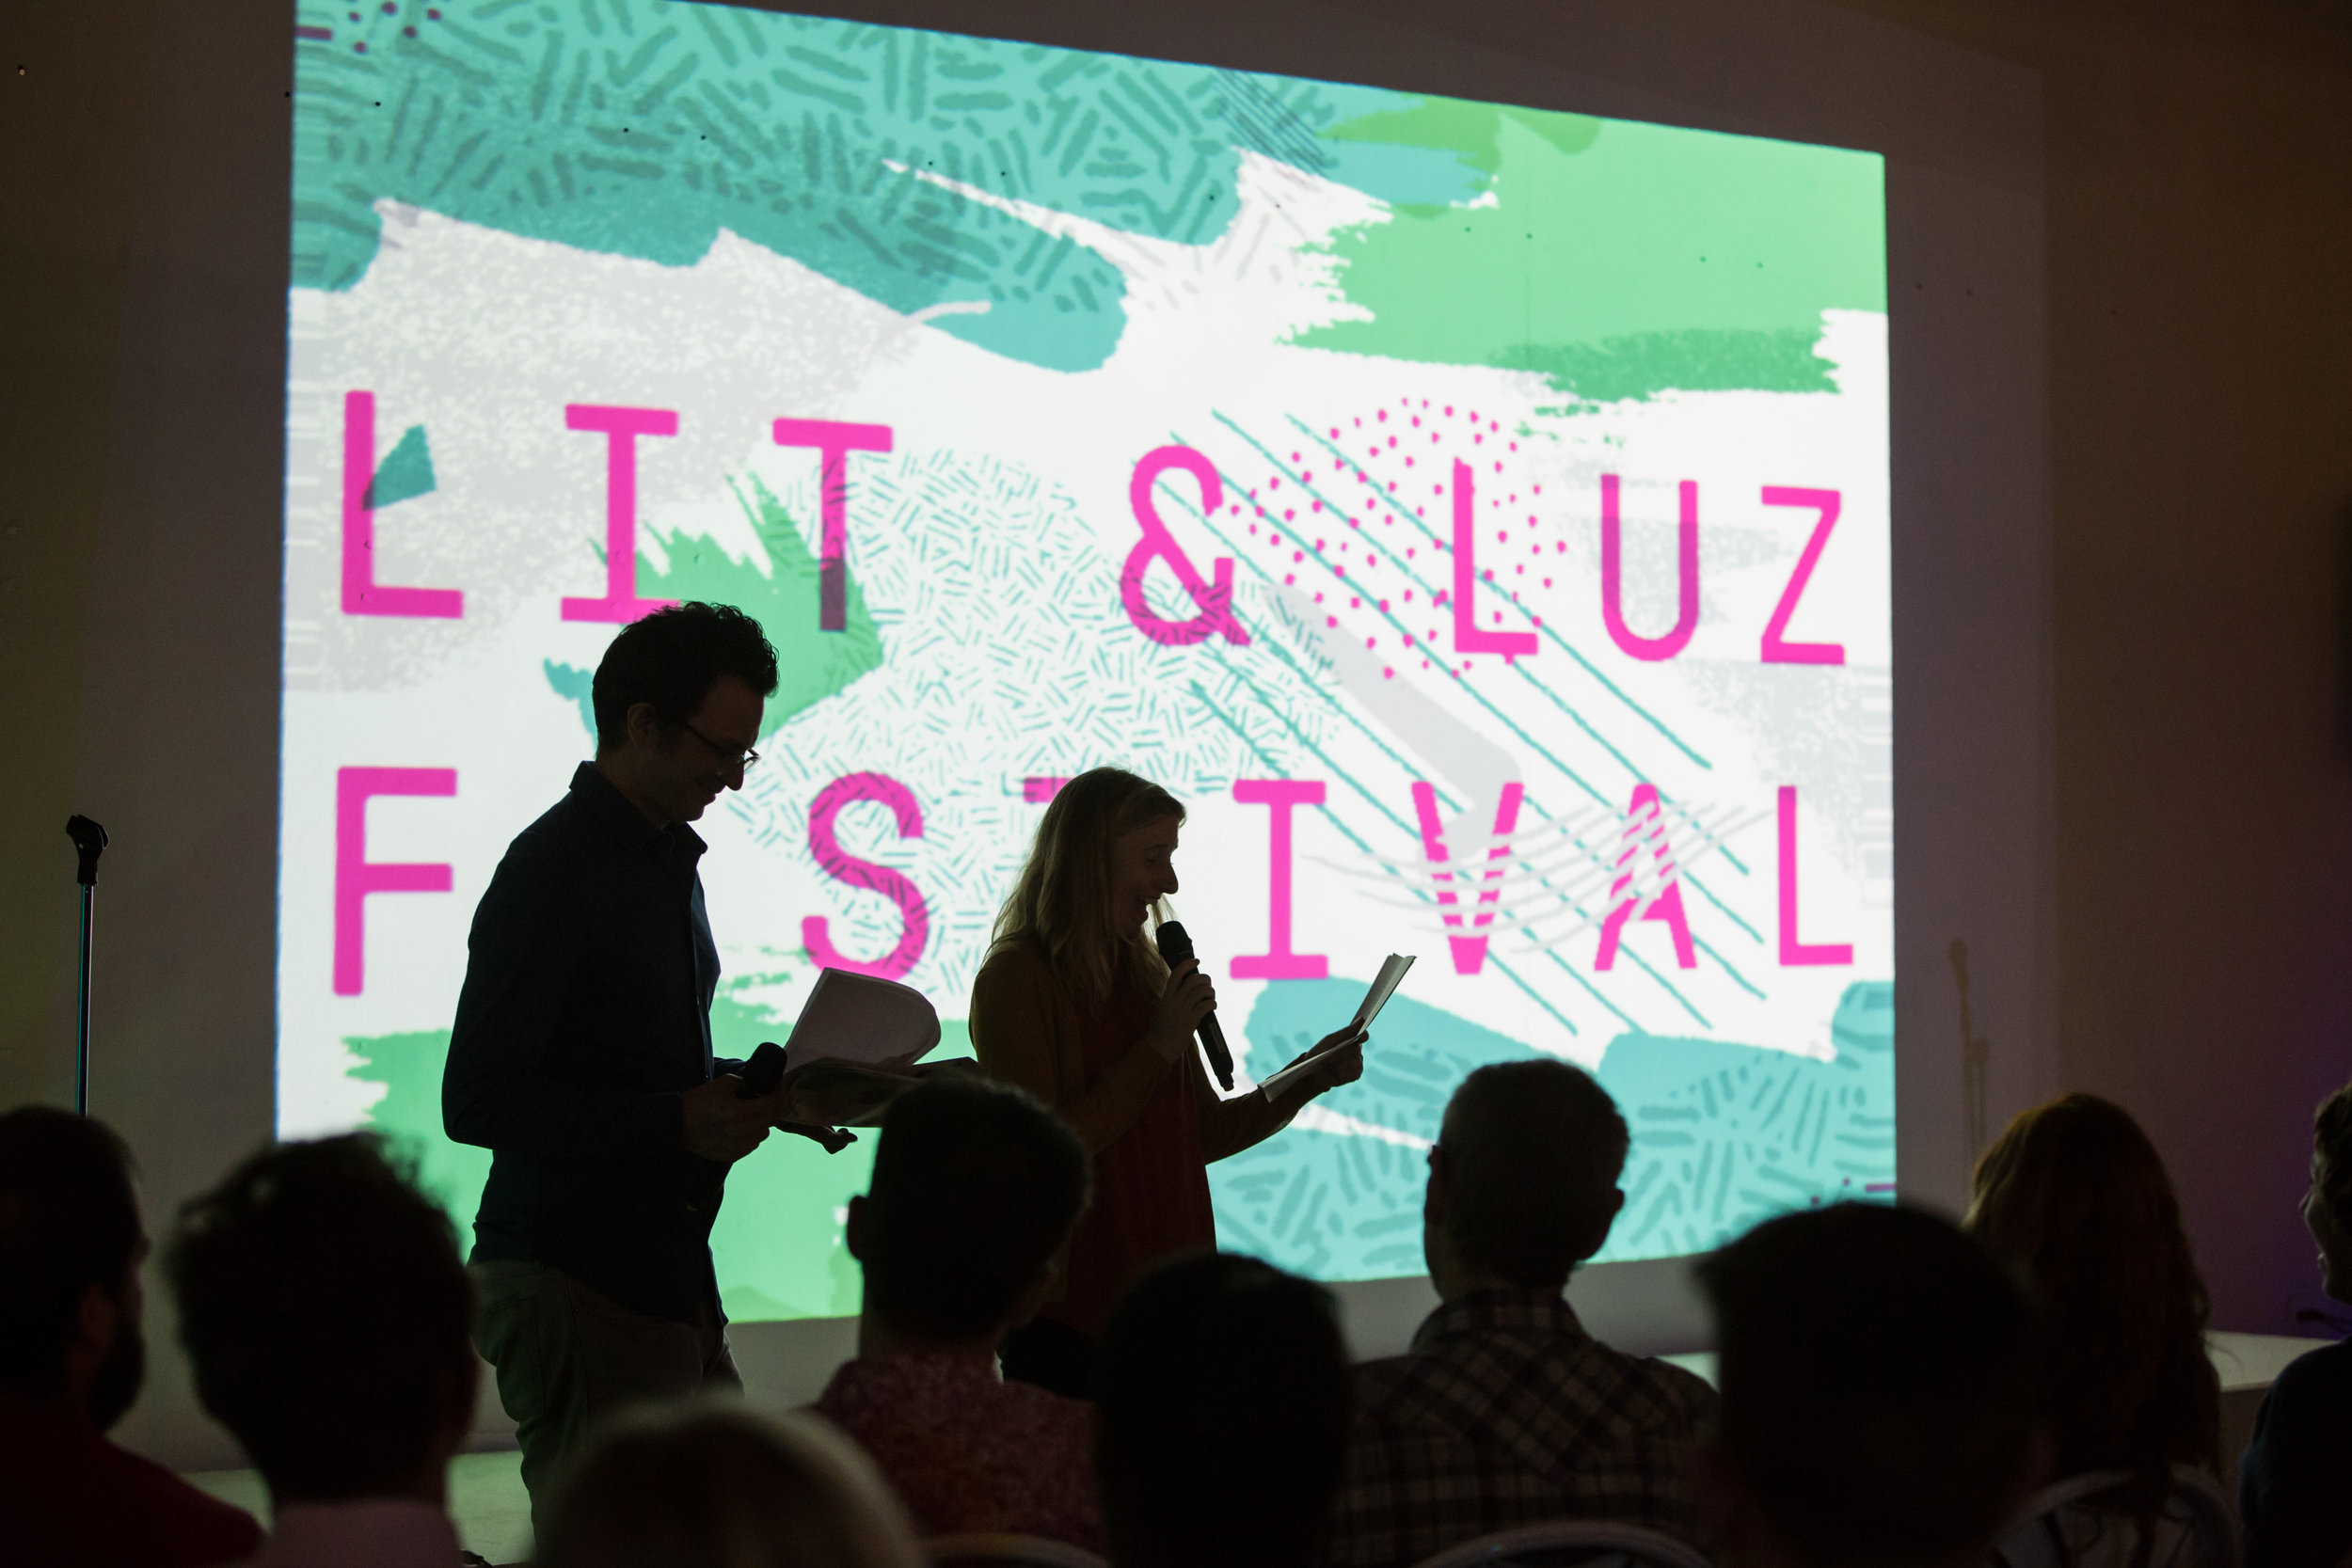 A $3000 or more donation  - You or a business of your choice named as a presenting sponsor at Lit & Luz 2018. Be our guest in Mexico City in 2018 or 2019 and Chicago and participate in behind-the-scenes activities!